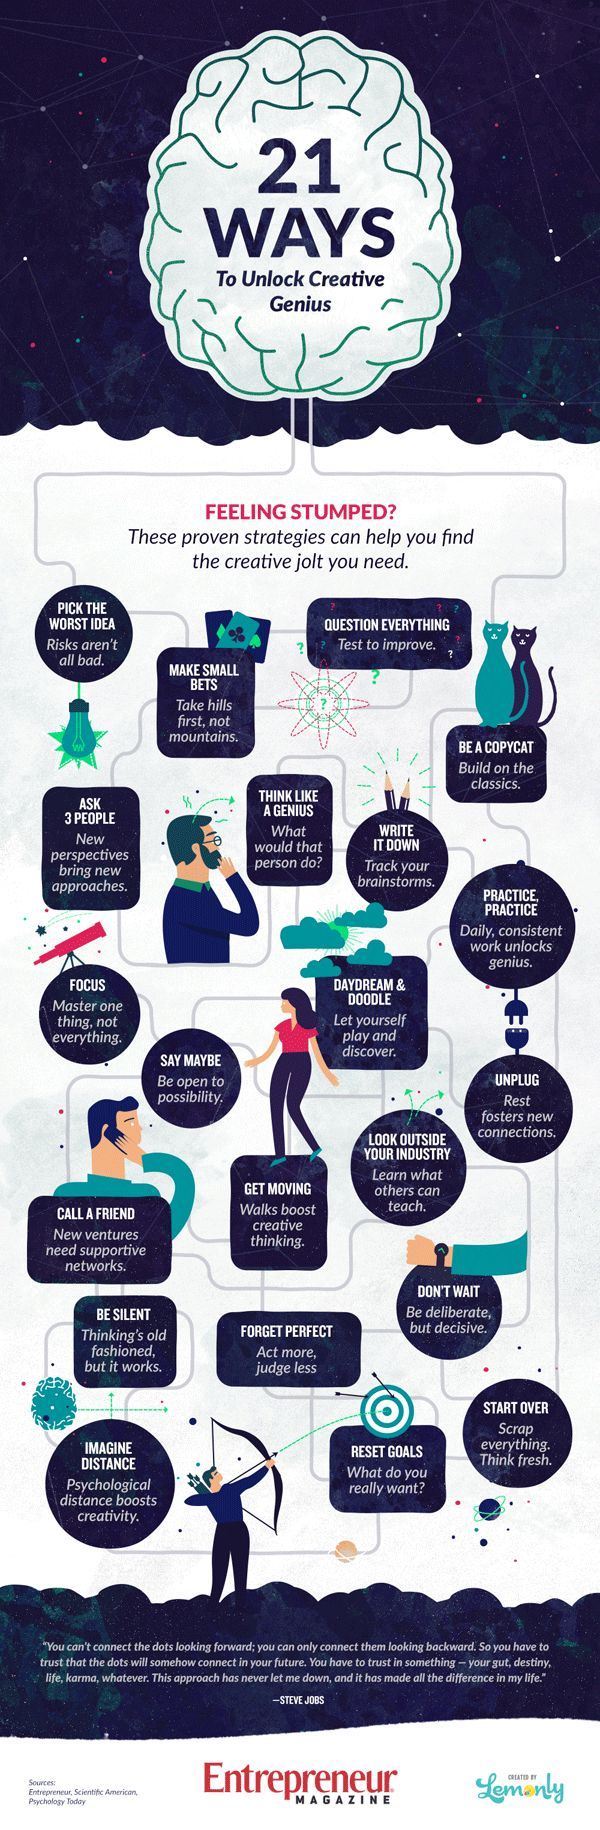 21 Ways to Unlock Your Creative Genius [Infographic]